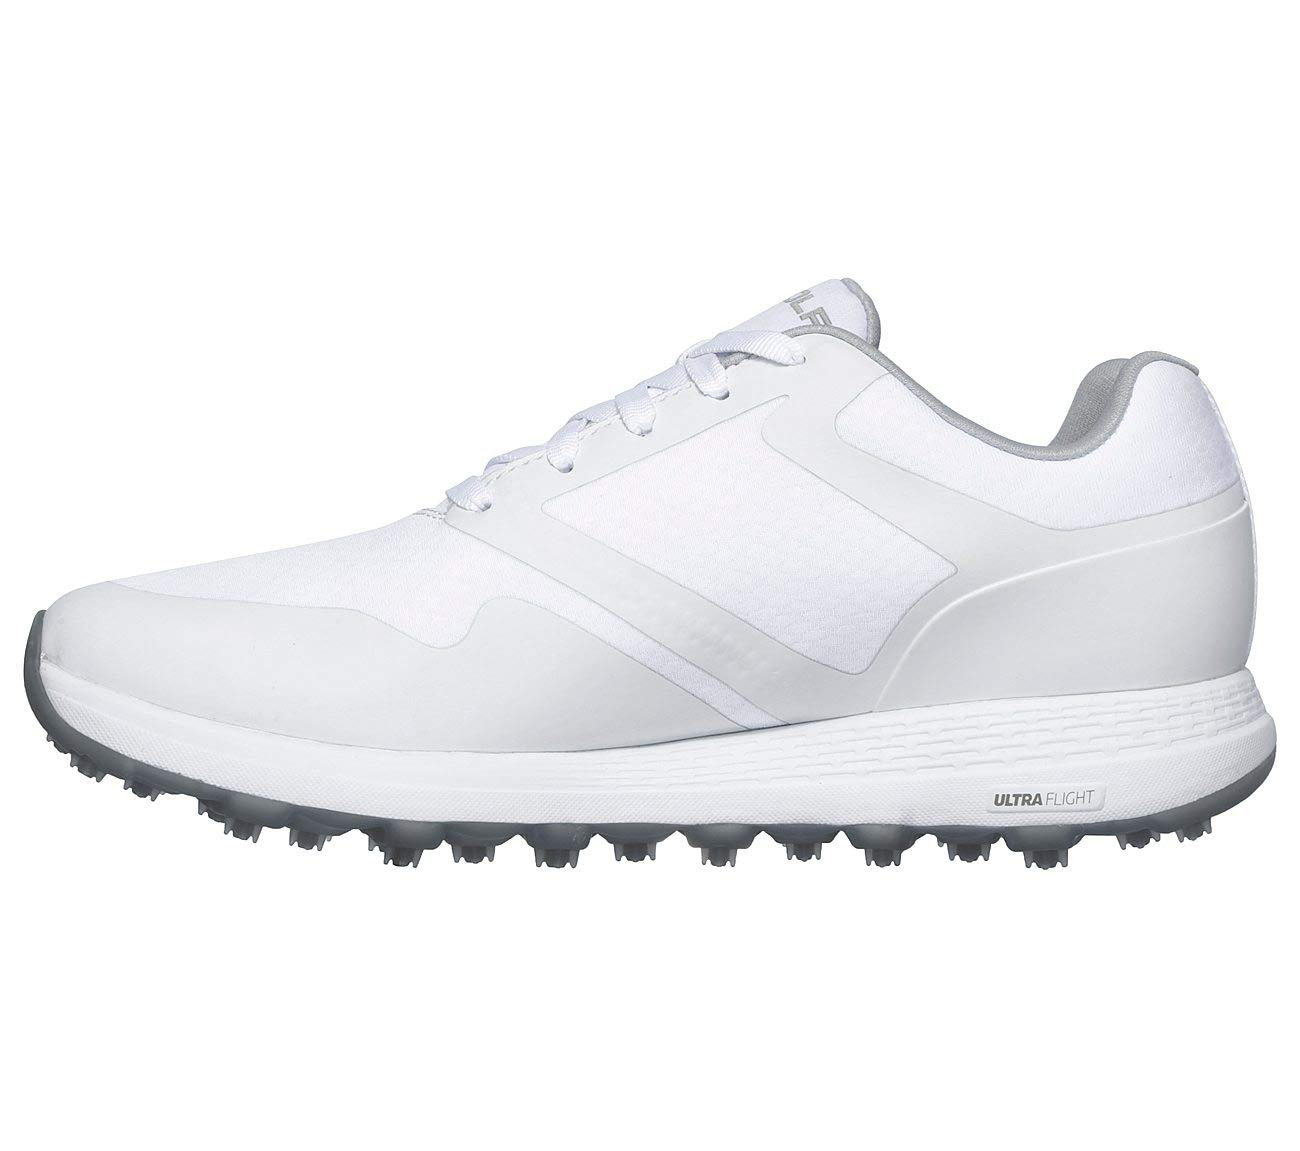 Skechers Women's Max Golf Shoe, White/Gray 7 W US